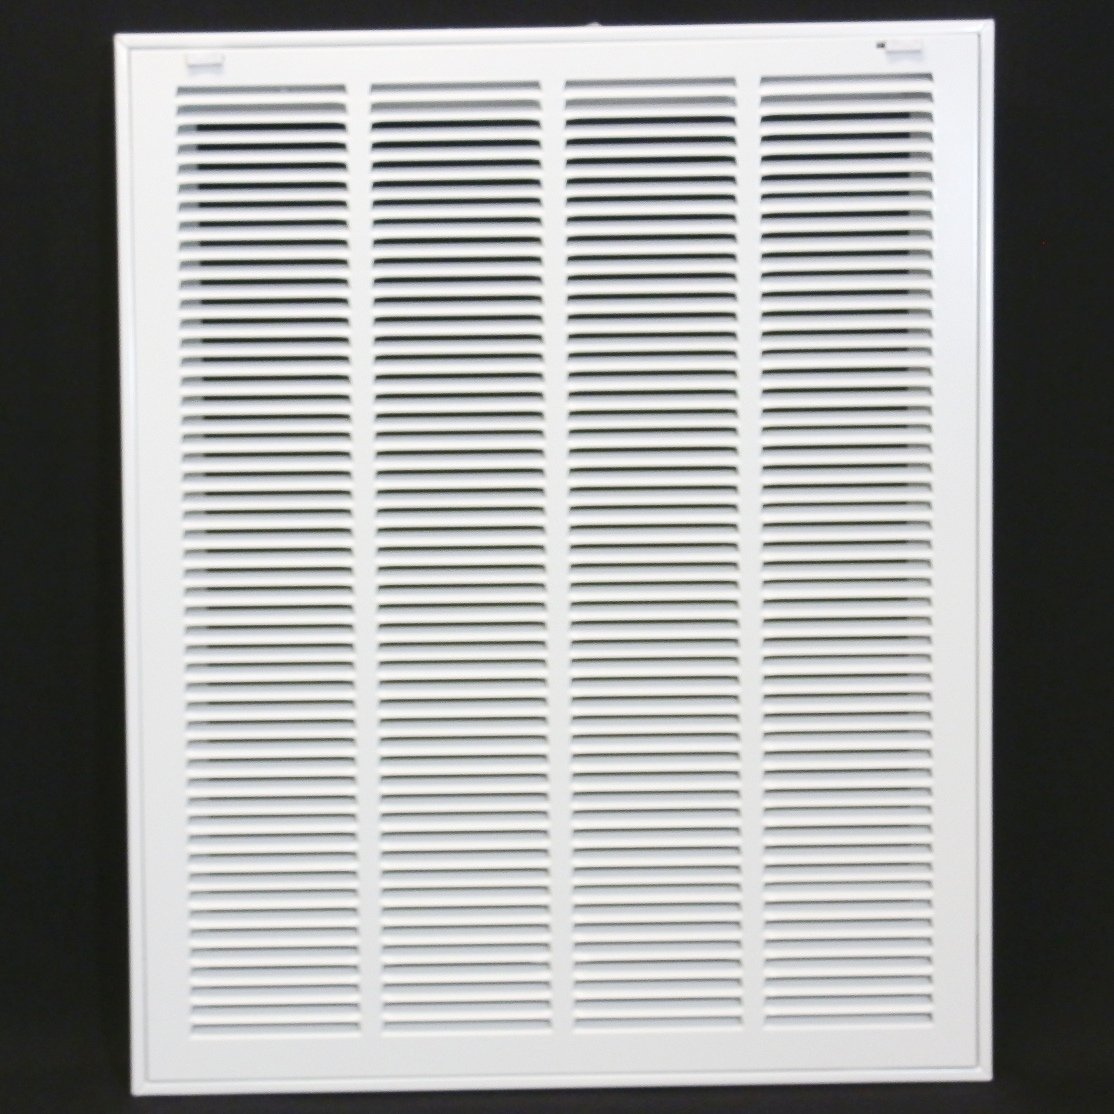 20'' X 25 Steel Return Air Filter Grille for 1'' Filter - Removable Face/Door - HVAC Duct Cover - Flat Stamped Face - White [Outer Dimensions: 22.5 X 26.75]